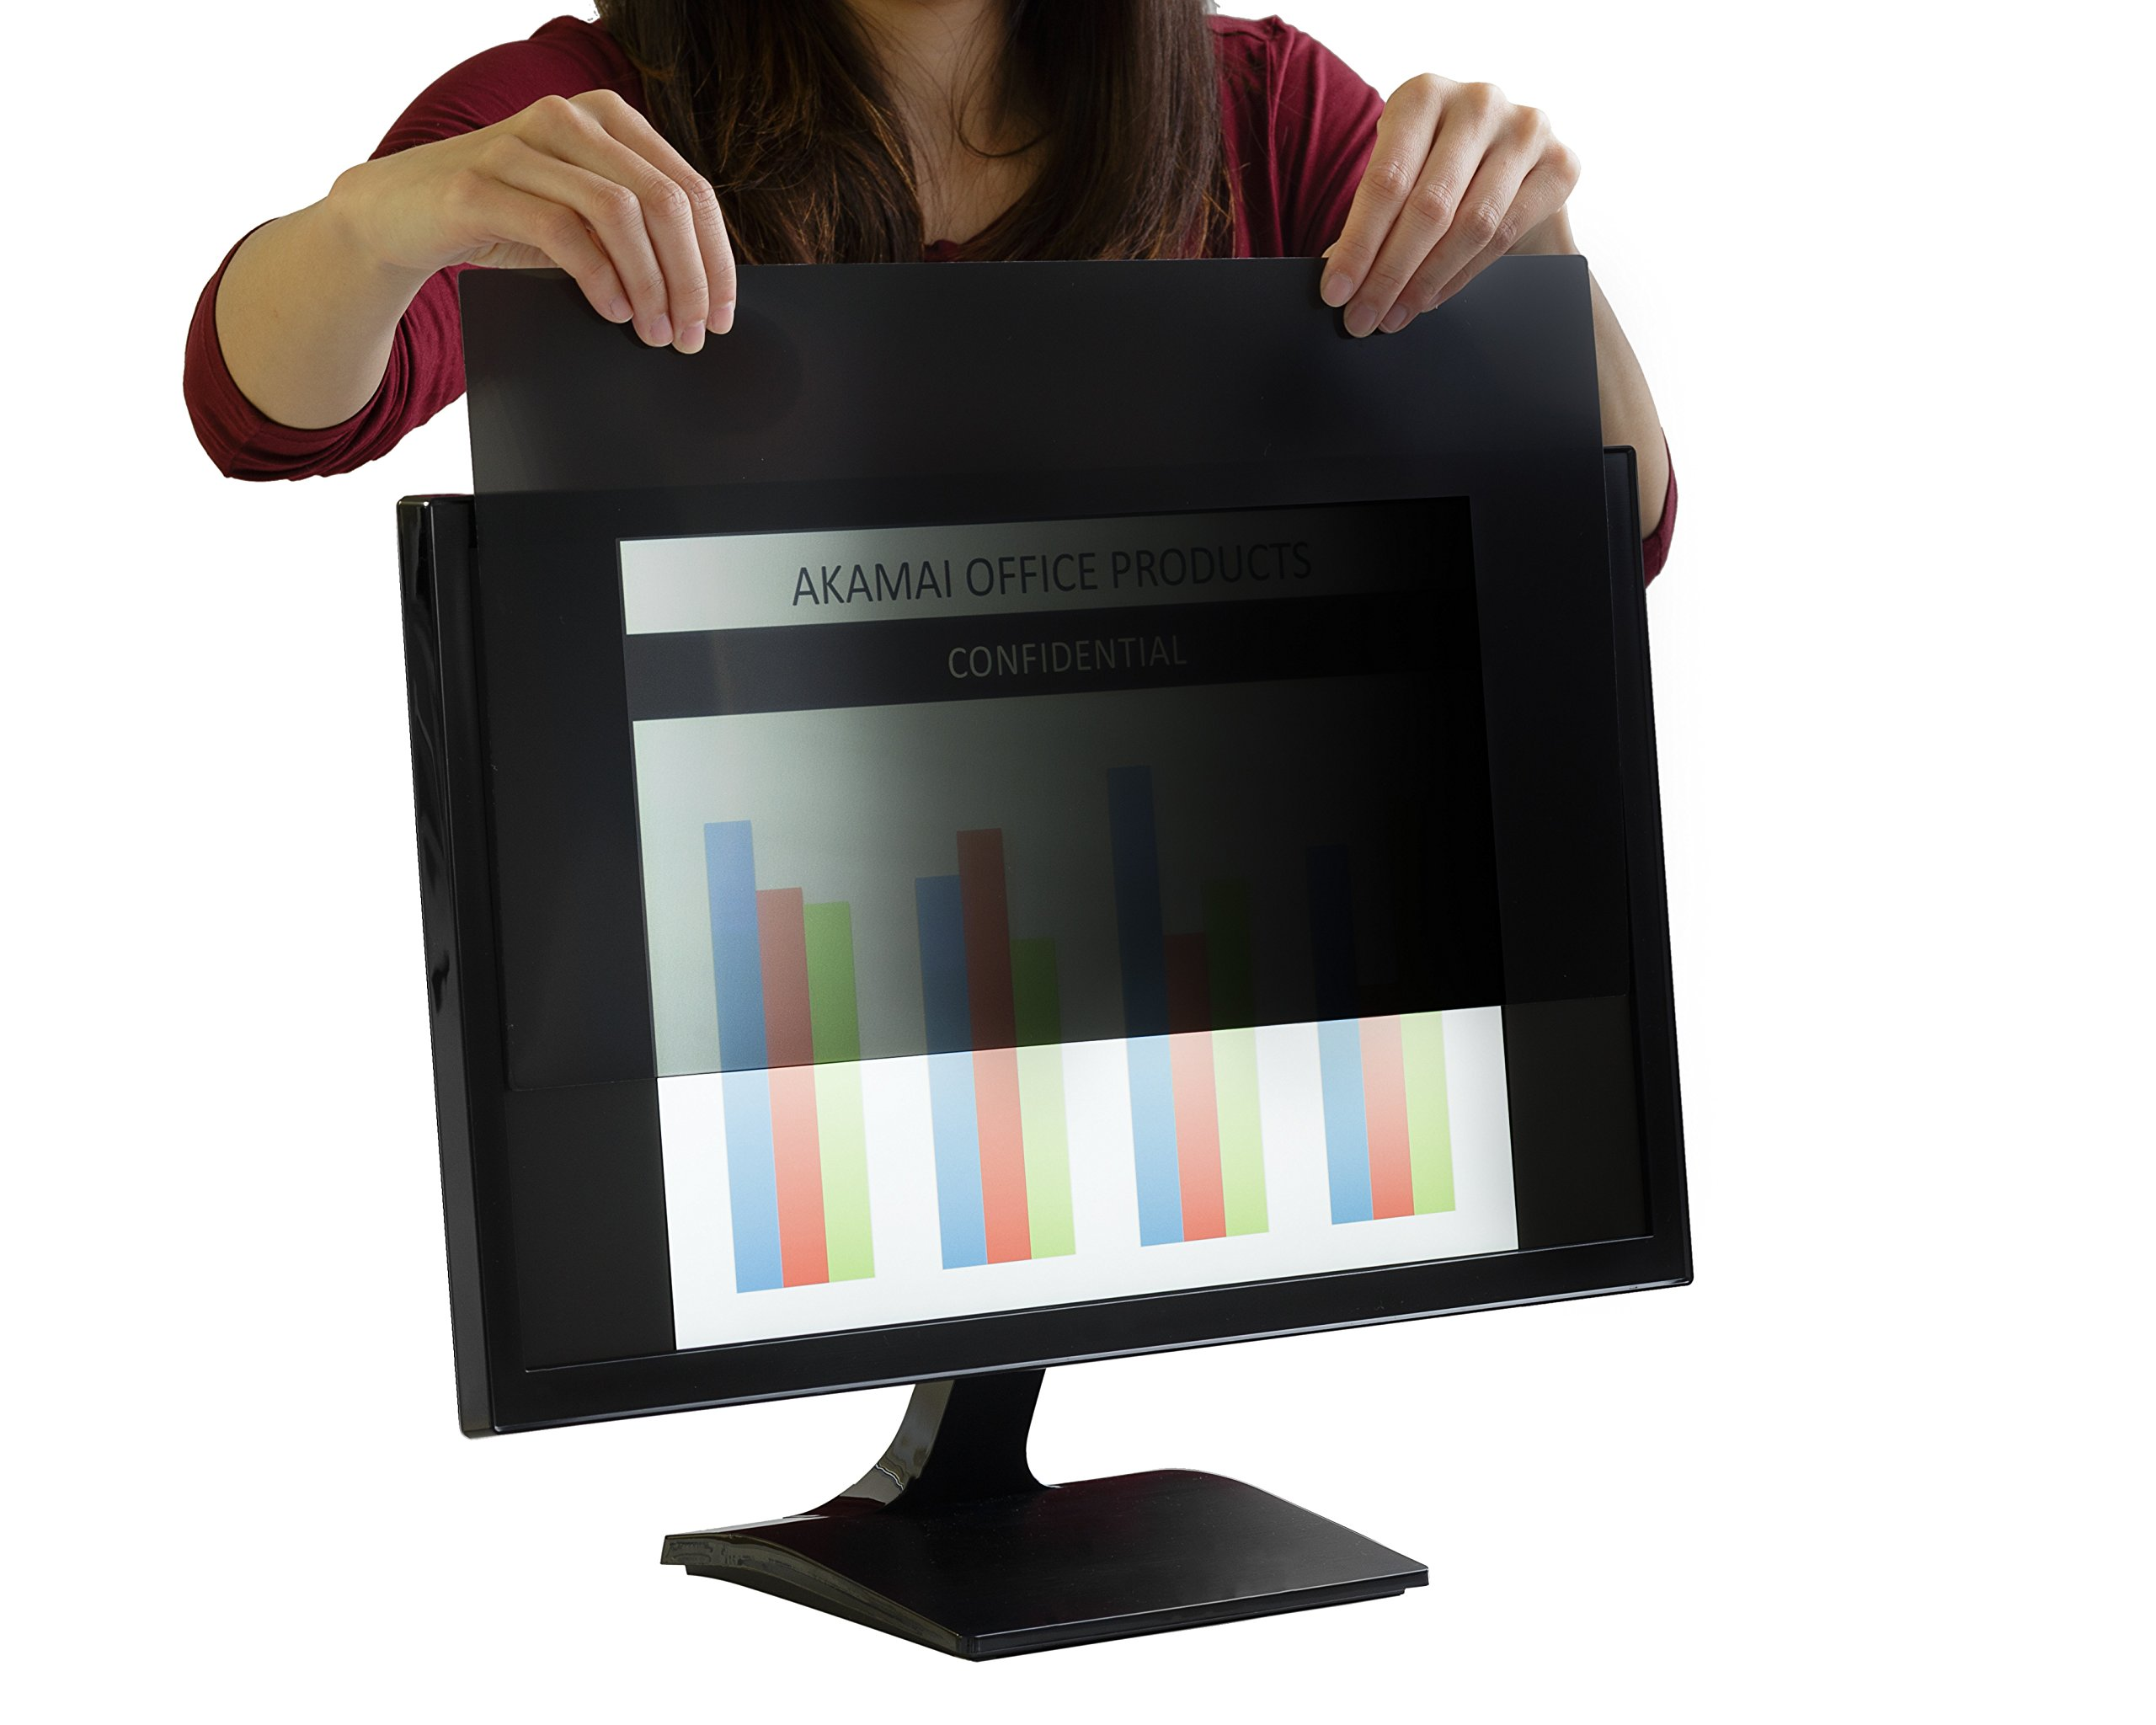 Akamai Office Products 25.0 Inch (Diagonally Measured) Privacy Screen Filter for Widescreen Computer Monitors-Anti Glare - PLEASE MEASURE CAREFULLY